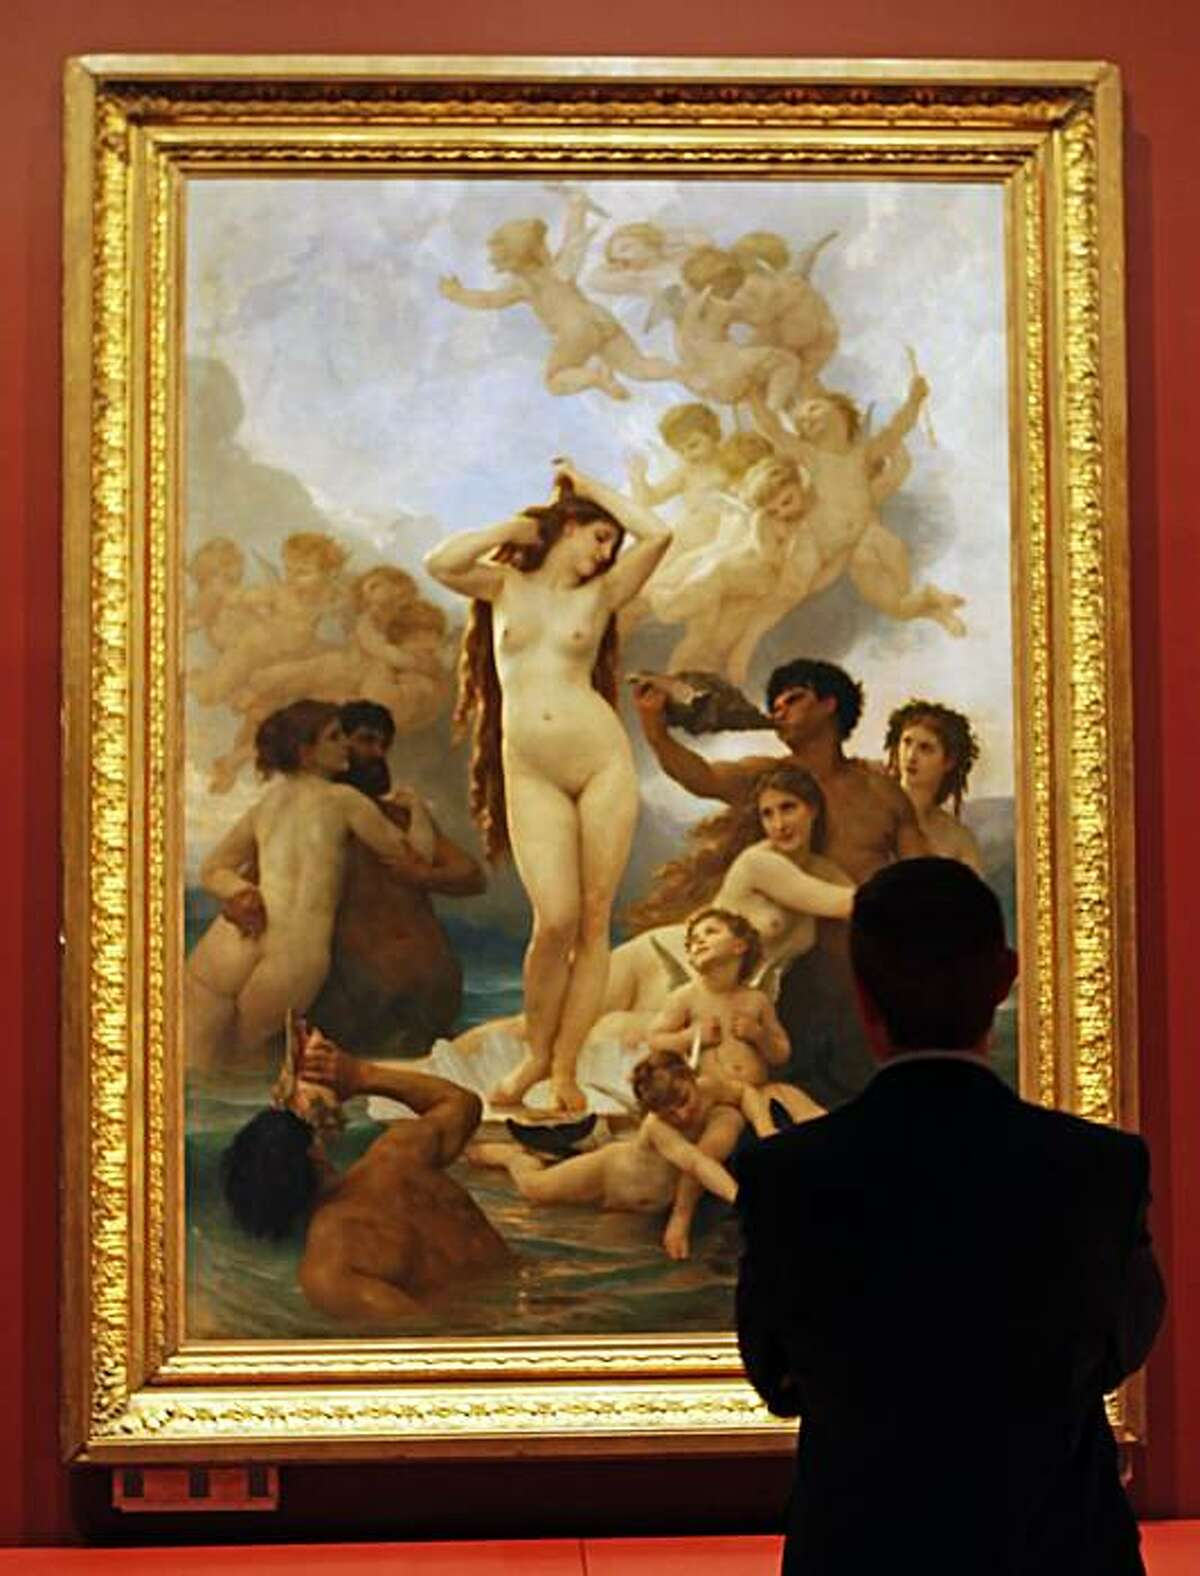 """John Buchanan Director of Museums, Fine Arts Museum of San Francisco views The Birth of Venus, by William-Adolphe Bouguereau 1879 minutes after it was hung at San Francisco's De Young Museum. The De Young Museum will unveil it's newsiest show May 22nd """"Birth of Impressionism: with over one hundred masterpieces on loan from the Musee d'Orsay in Paris. Wednesday May 5, 2010."""